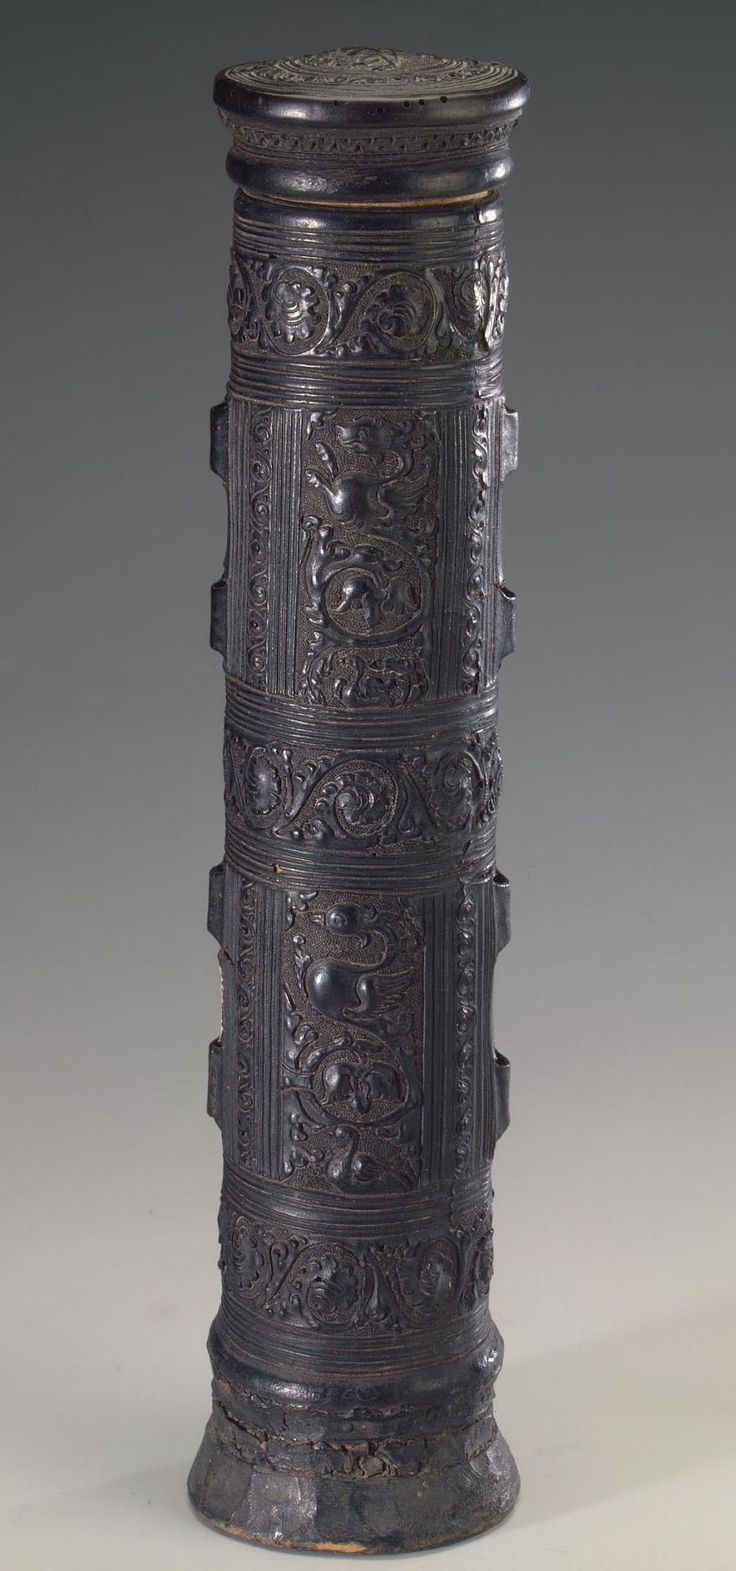 Scroll Case Italy, medieval 15th century Leather & wood h. 35 cm